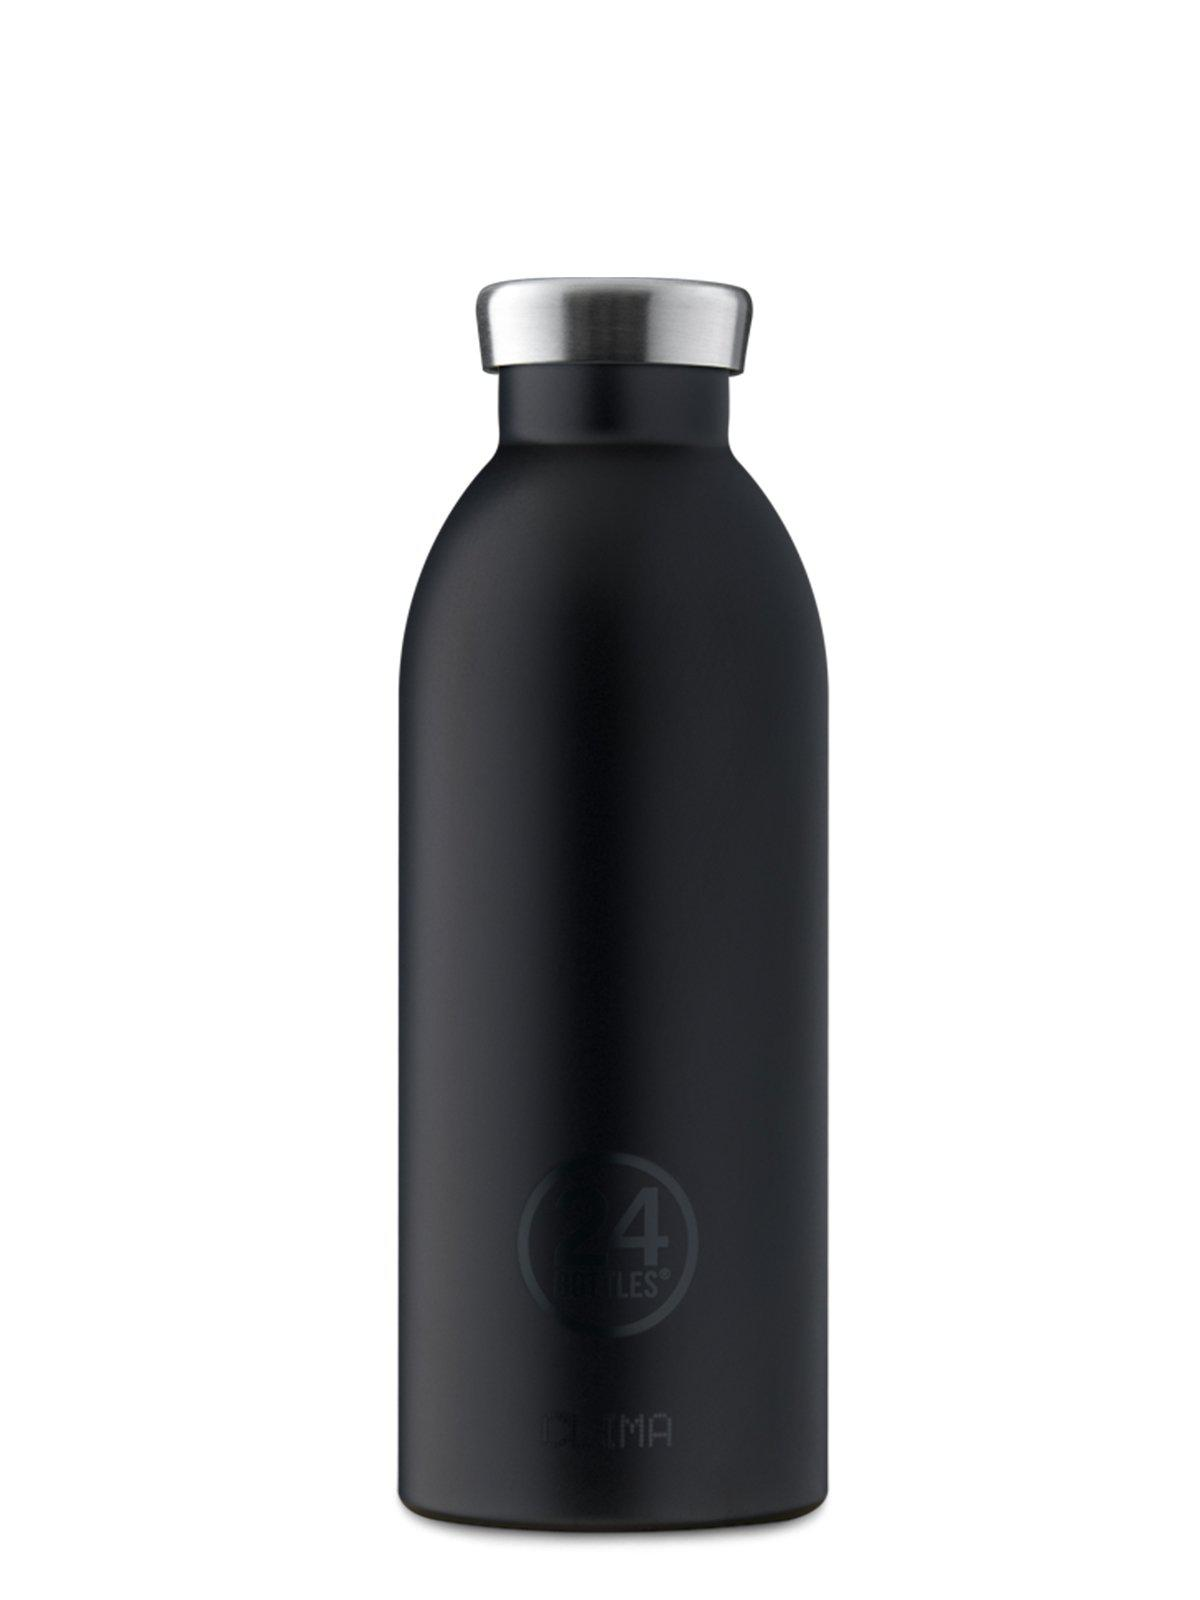 24Bottles Clima Bottle Tuxedo Black 500ml - MORE by Morello Indonesia